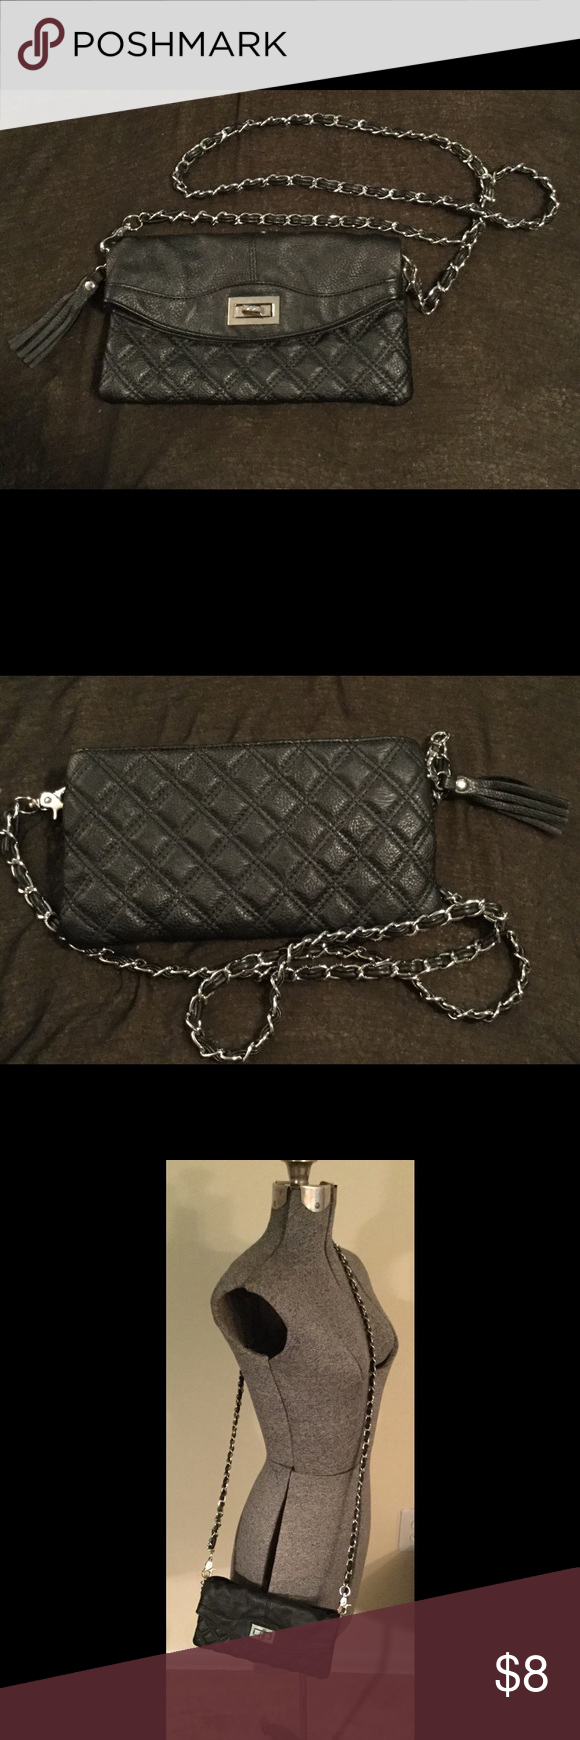 Forever21 Purse This forever21 black purse has a chain strap and has been gently used. The original price is unknown. Forever 21 Bags Crossbody Bags